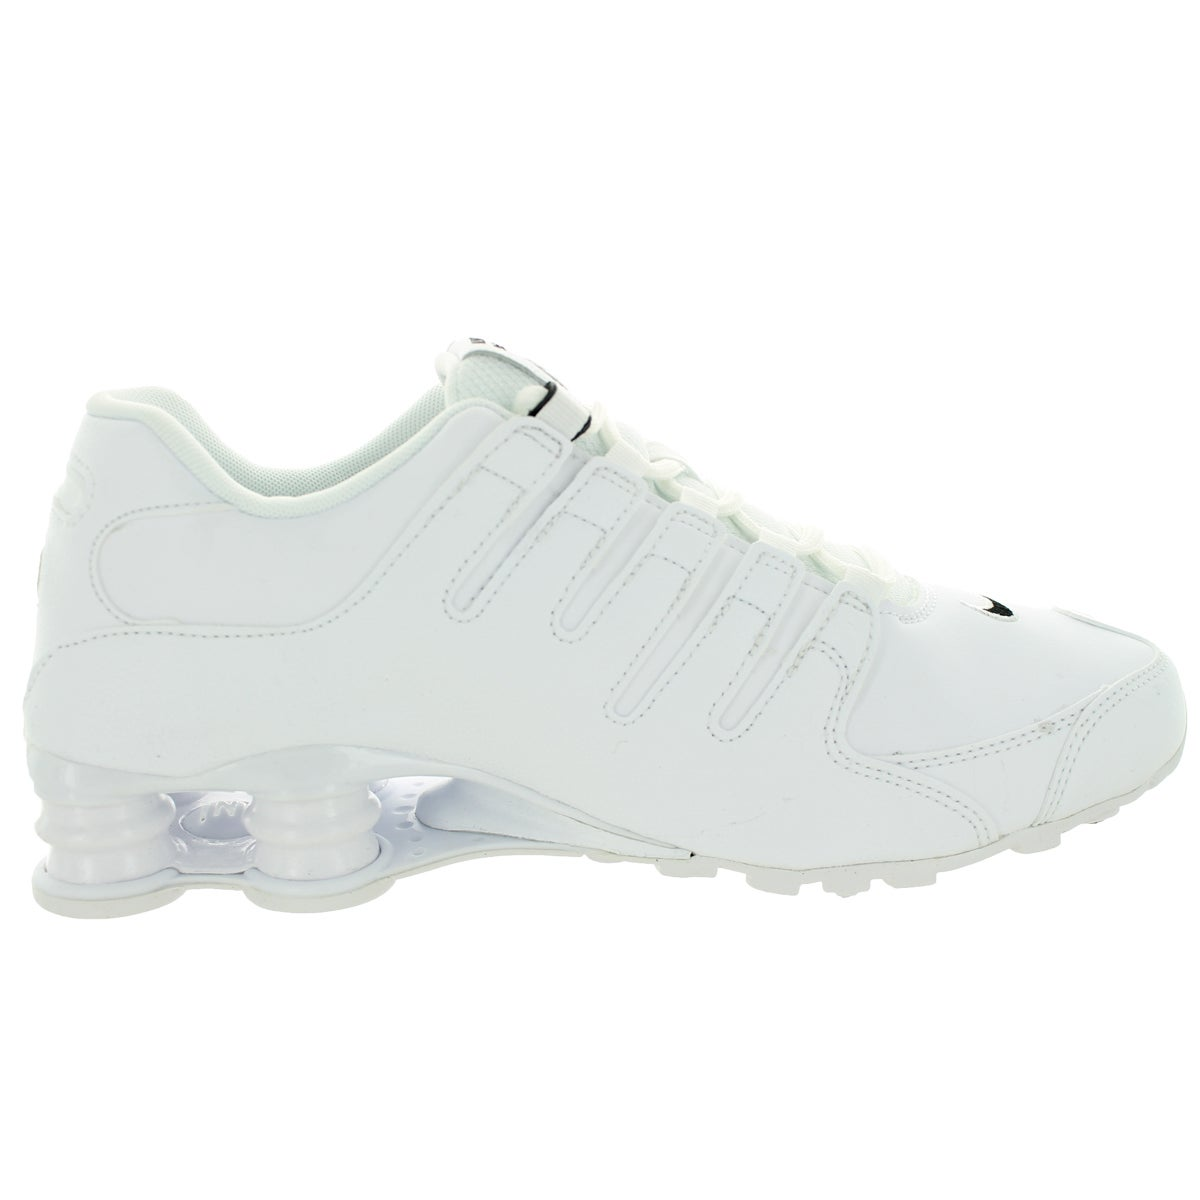 108a8766970e Shop Nike Men s Shox NZ EU Black and White Leather Size 11.5 Running Shoes  - Free Shipping Today - Overstock.com - 13395209